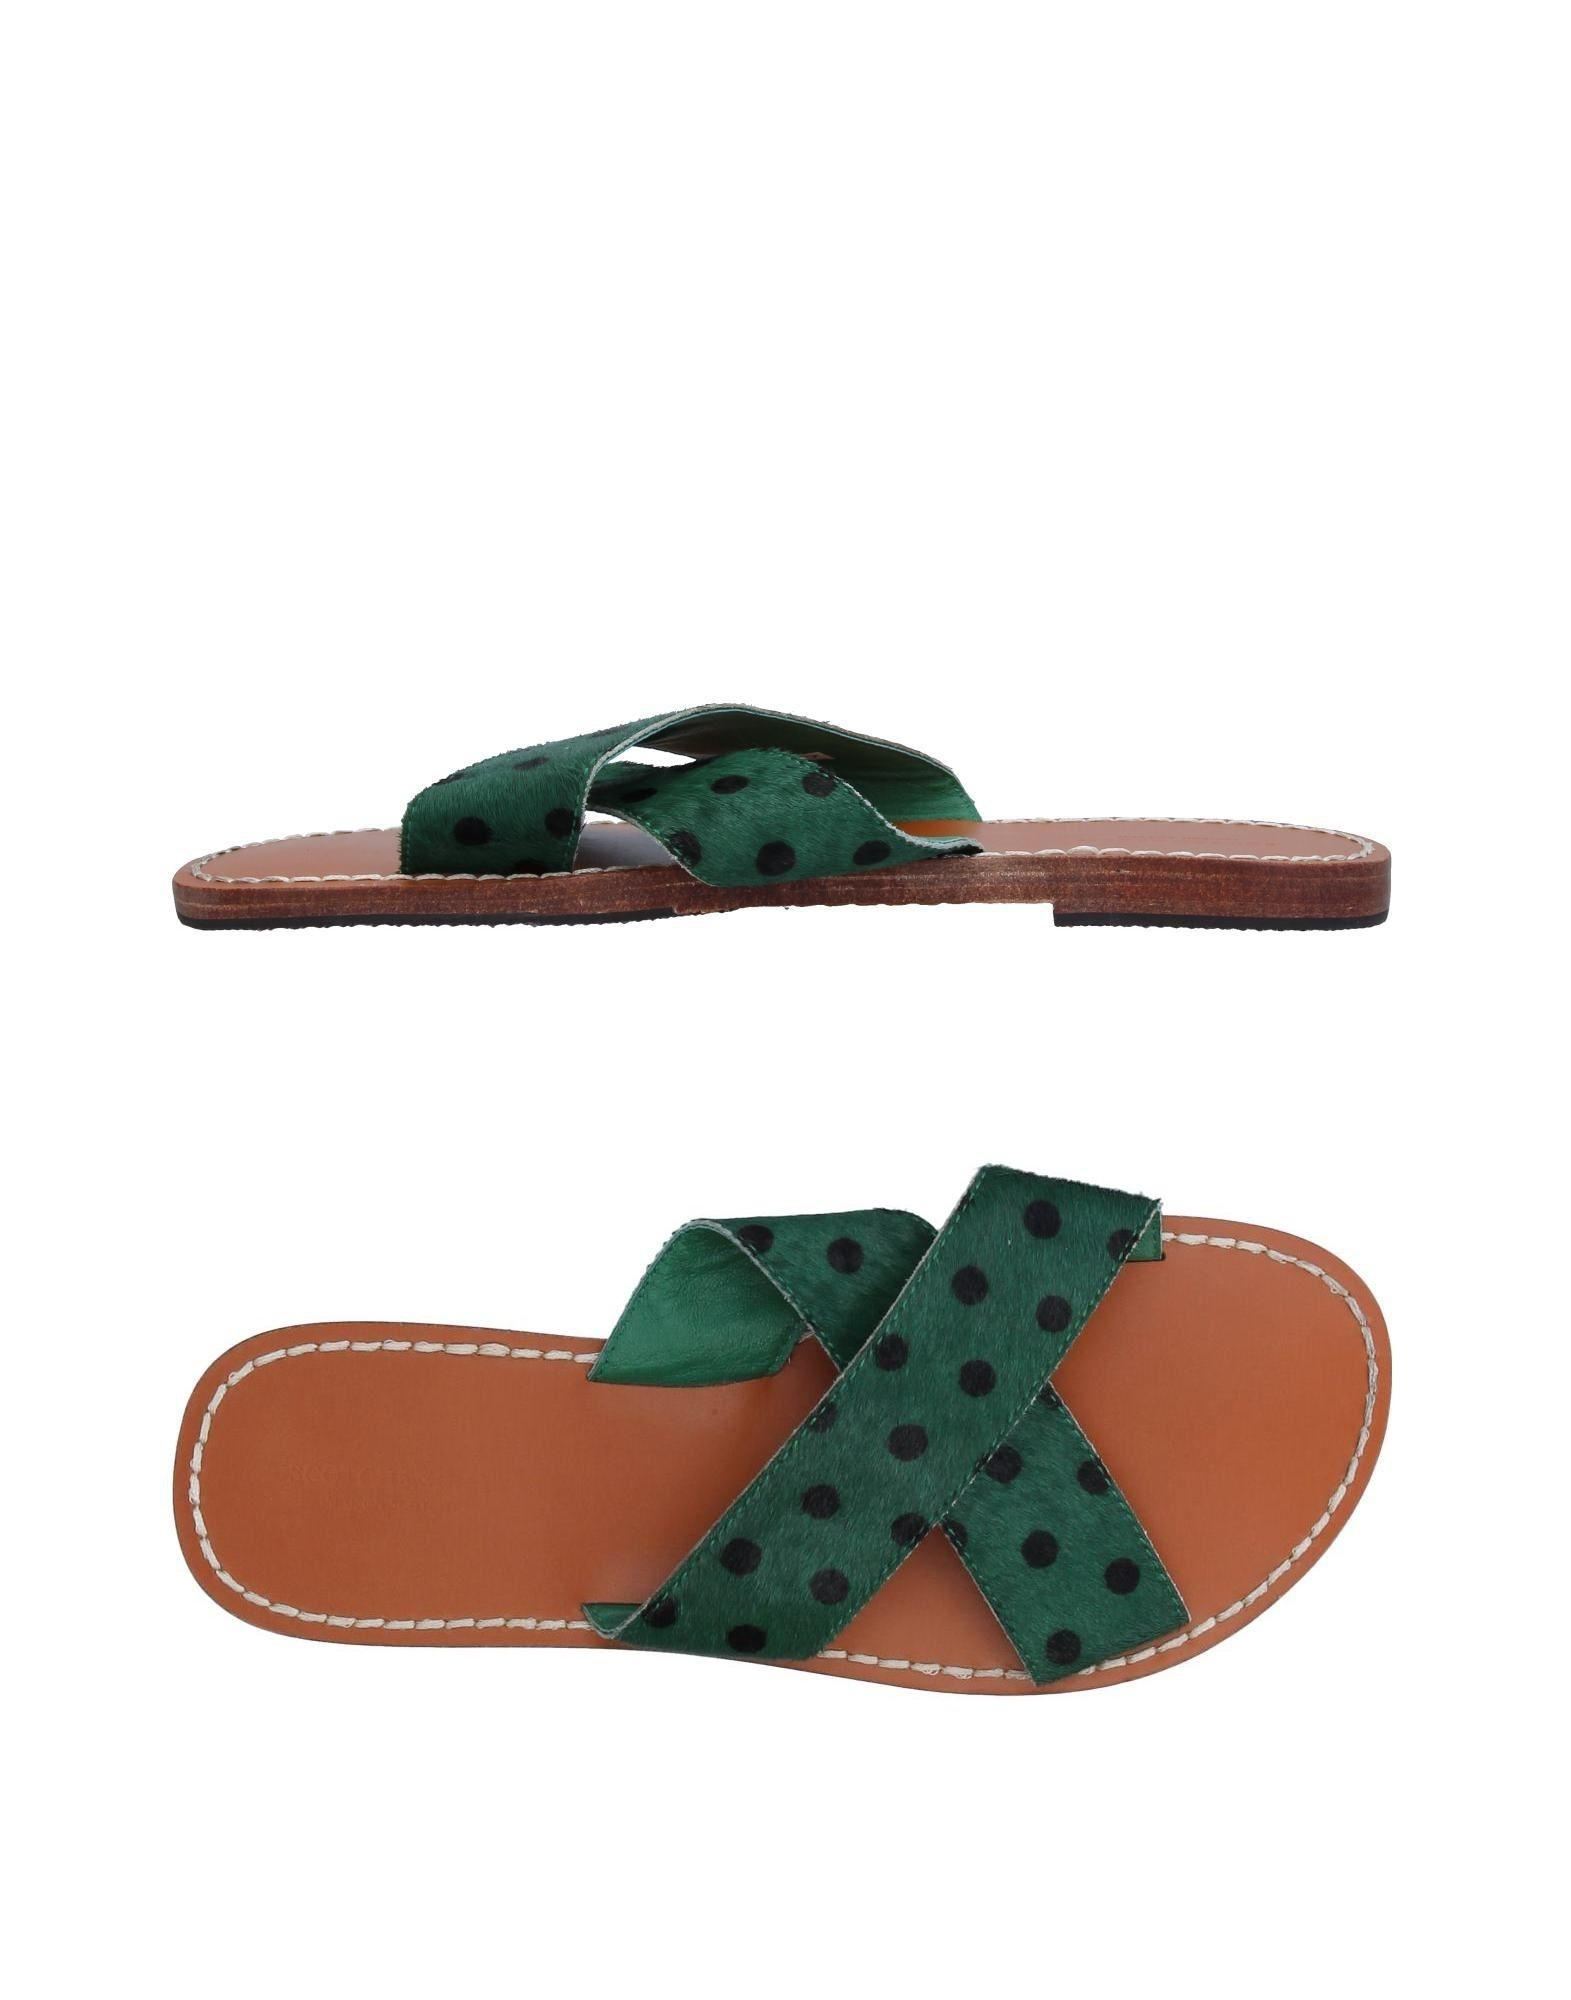 Maison Scotch Exclusive Slipper Shoes In Canvas And Tassles official site cheap price w76pdNfMP